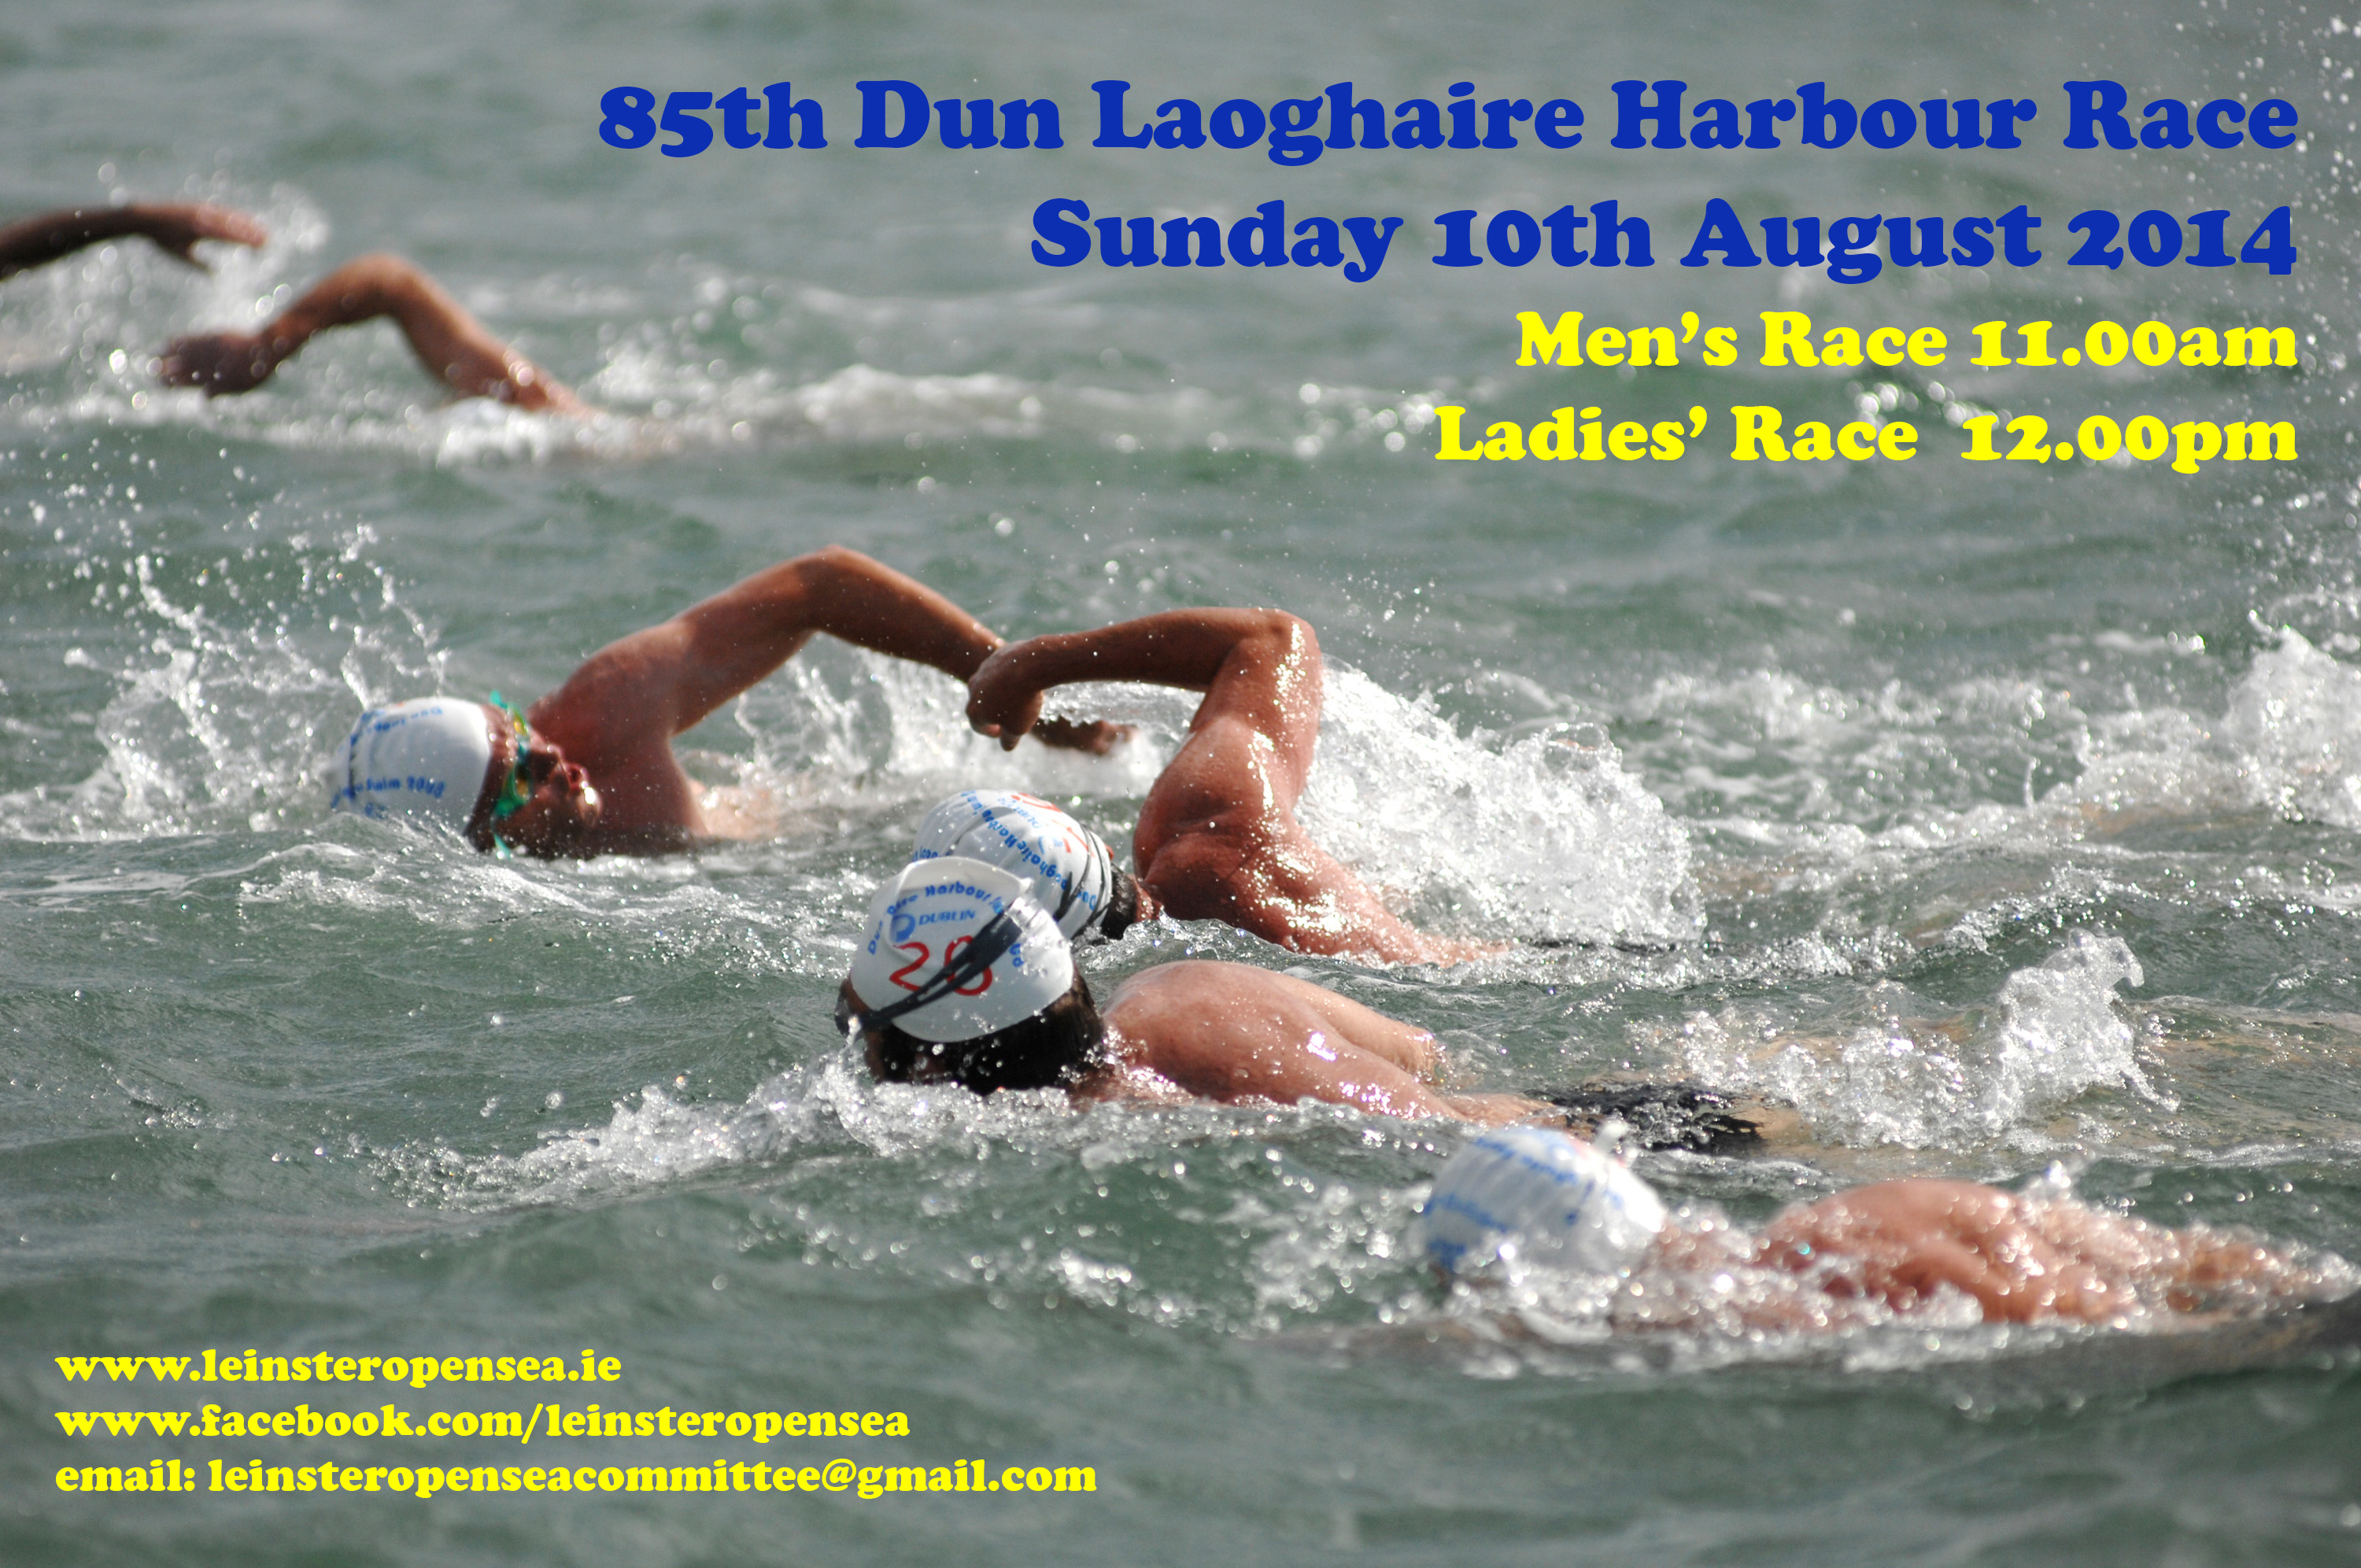 85th Dun Laoghaire Harbour Race   Sunday 10th August/open water club news